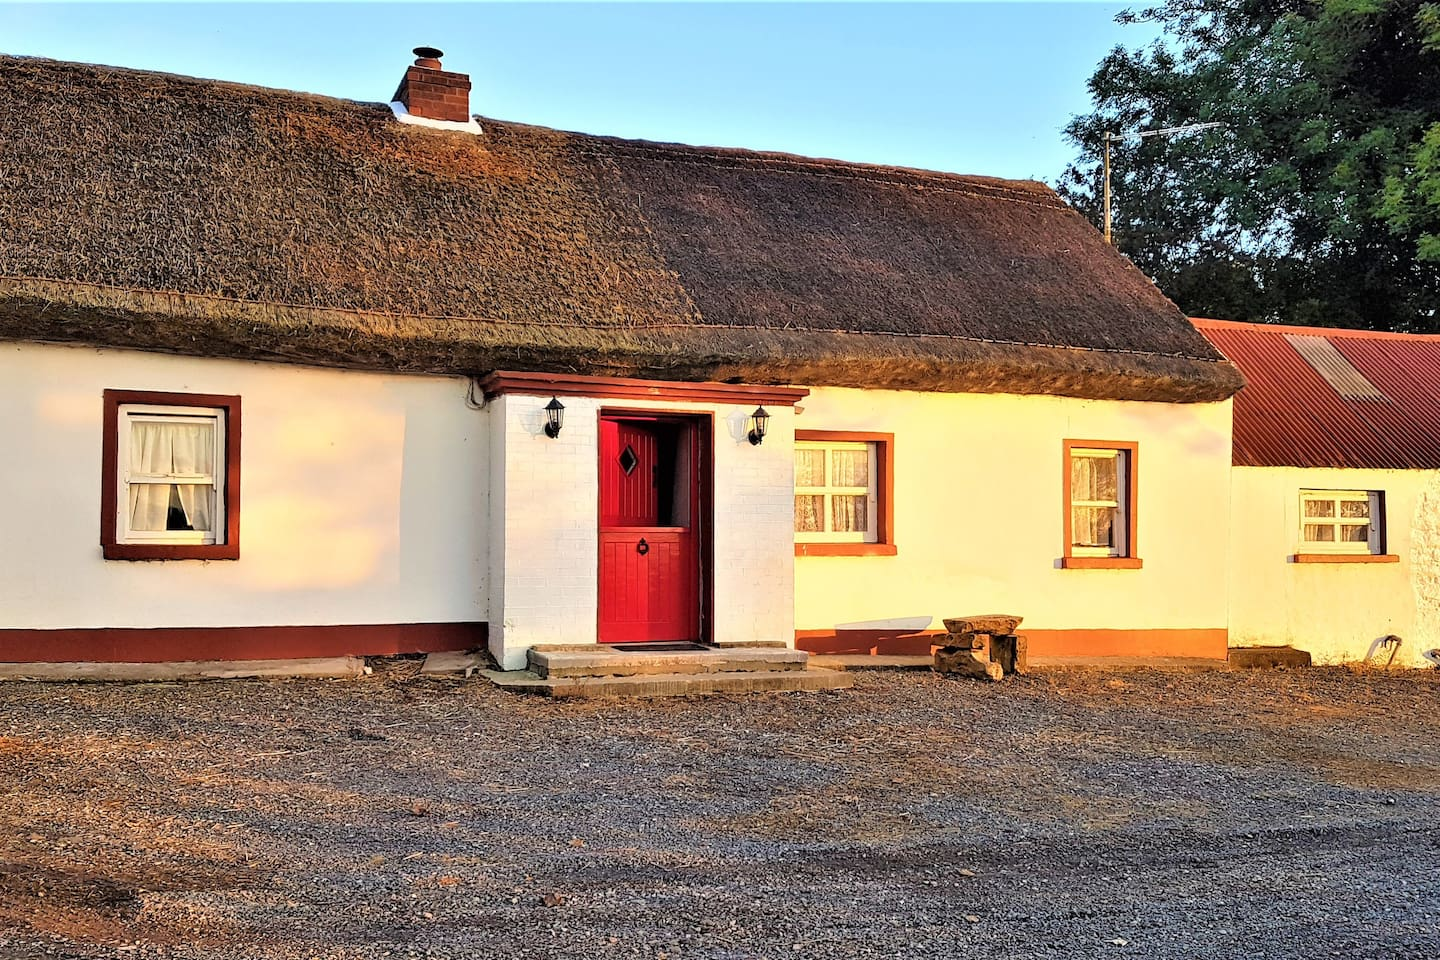 200 year old Thatch Cottage with a updated interior